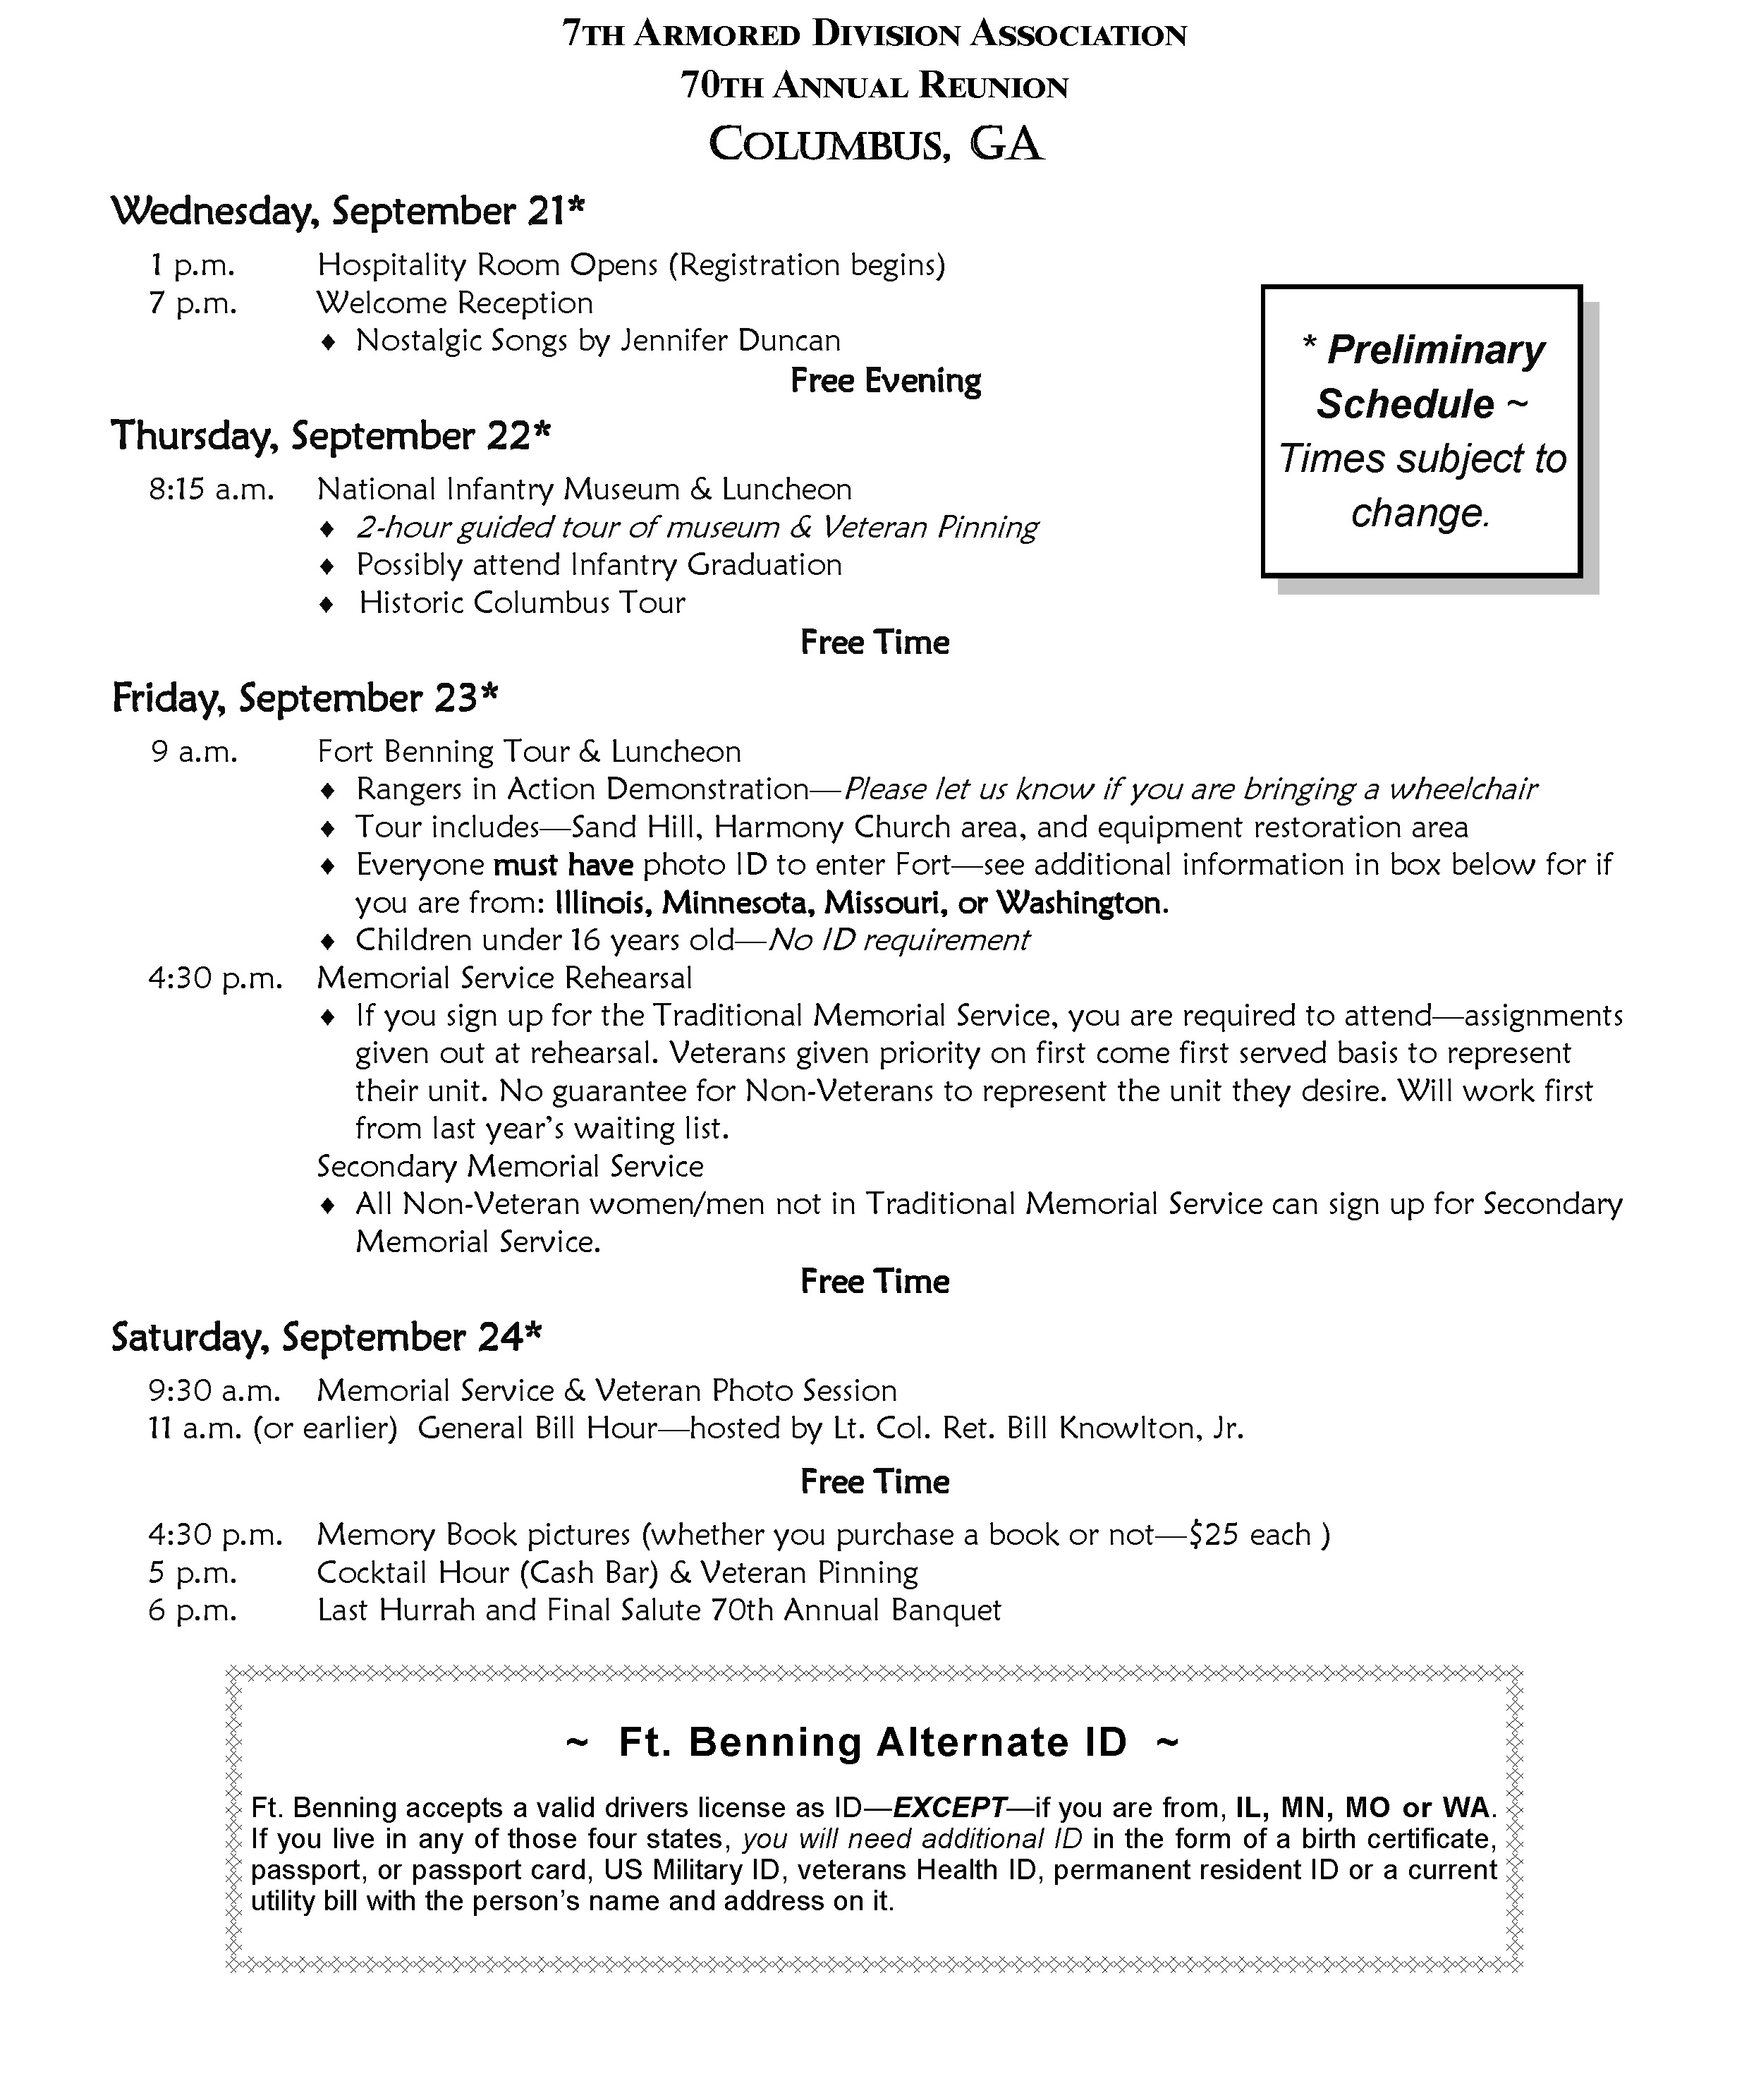 Reunion Schedule - Click for full size